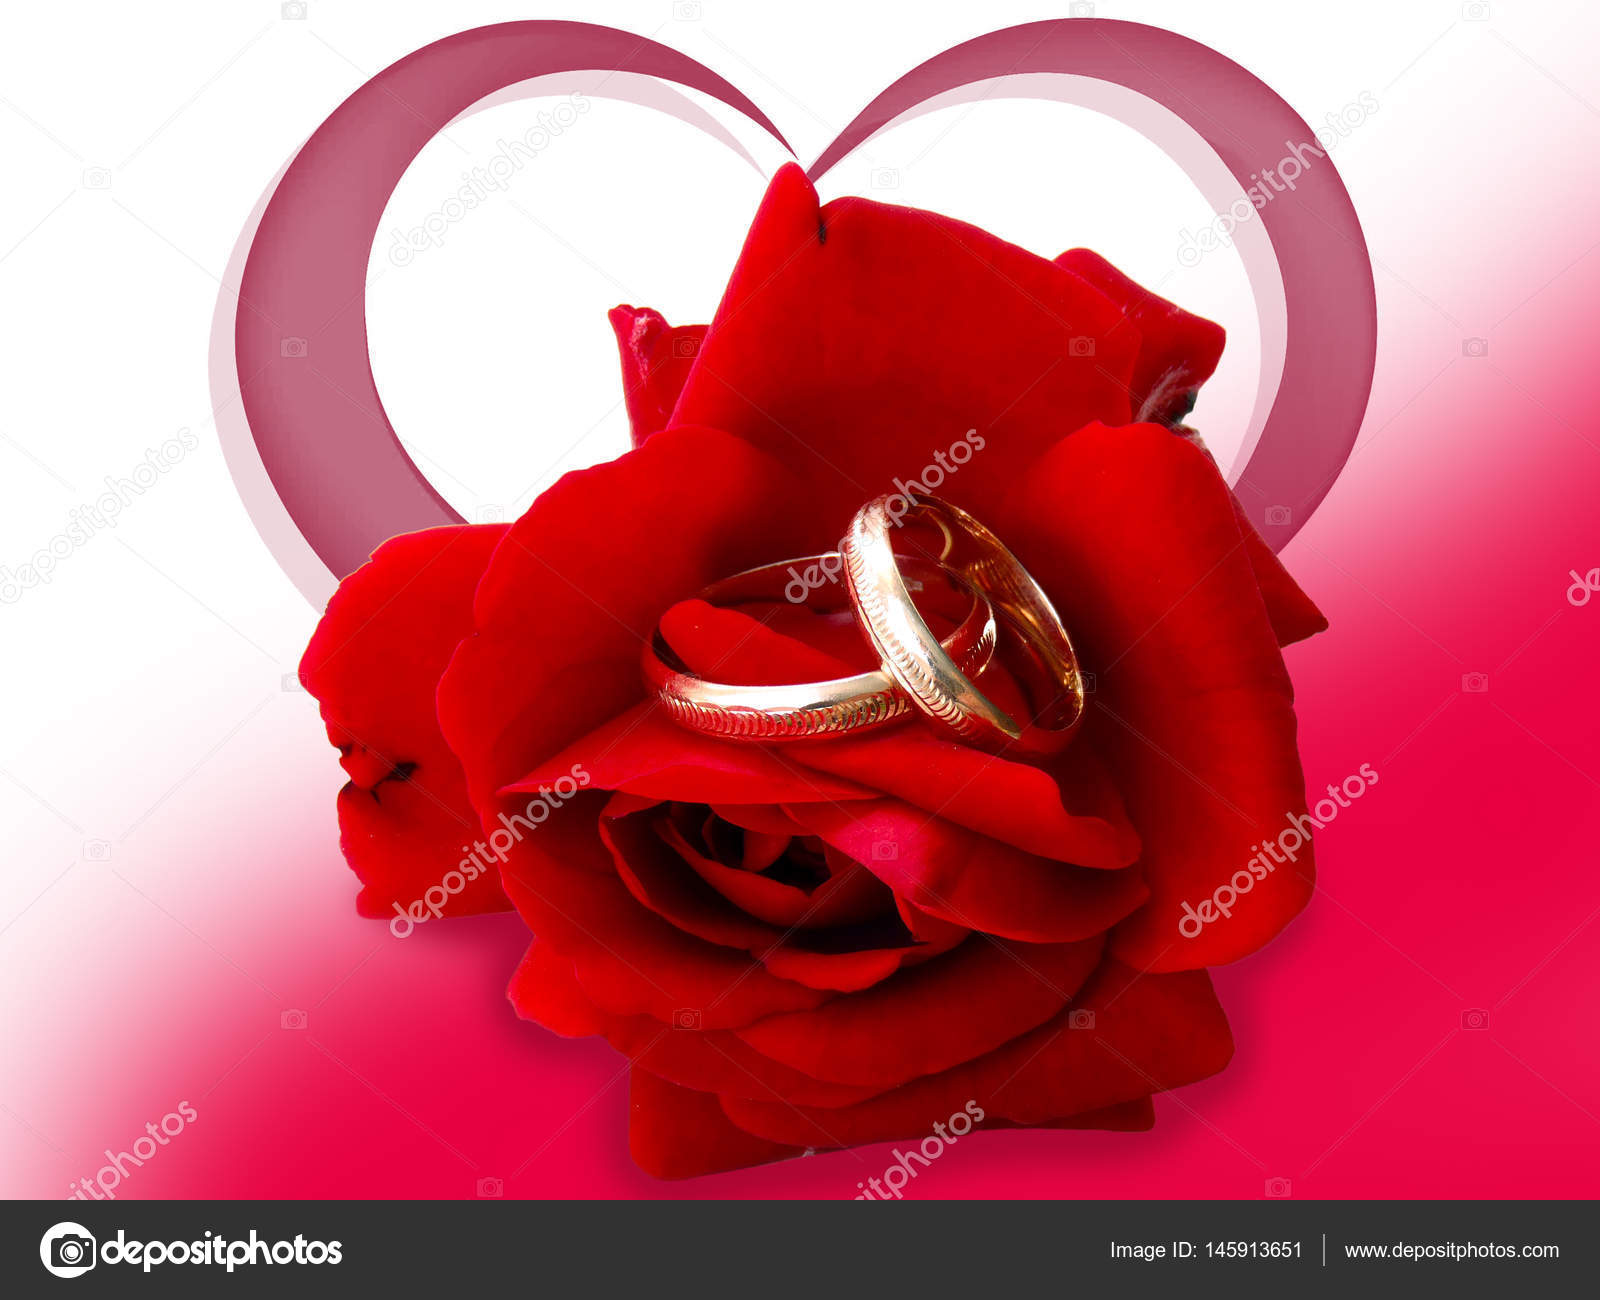 image of rose background rings download red golden on petals free royalty stock images wedding ring